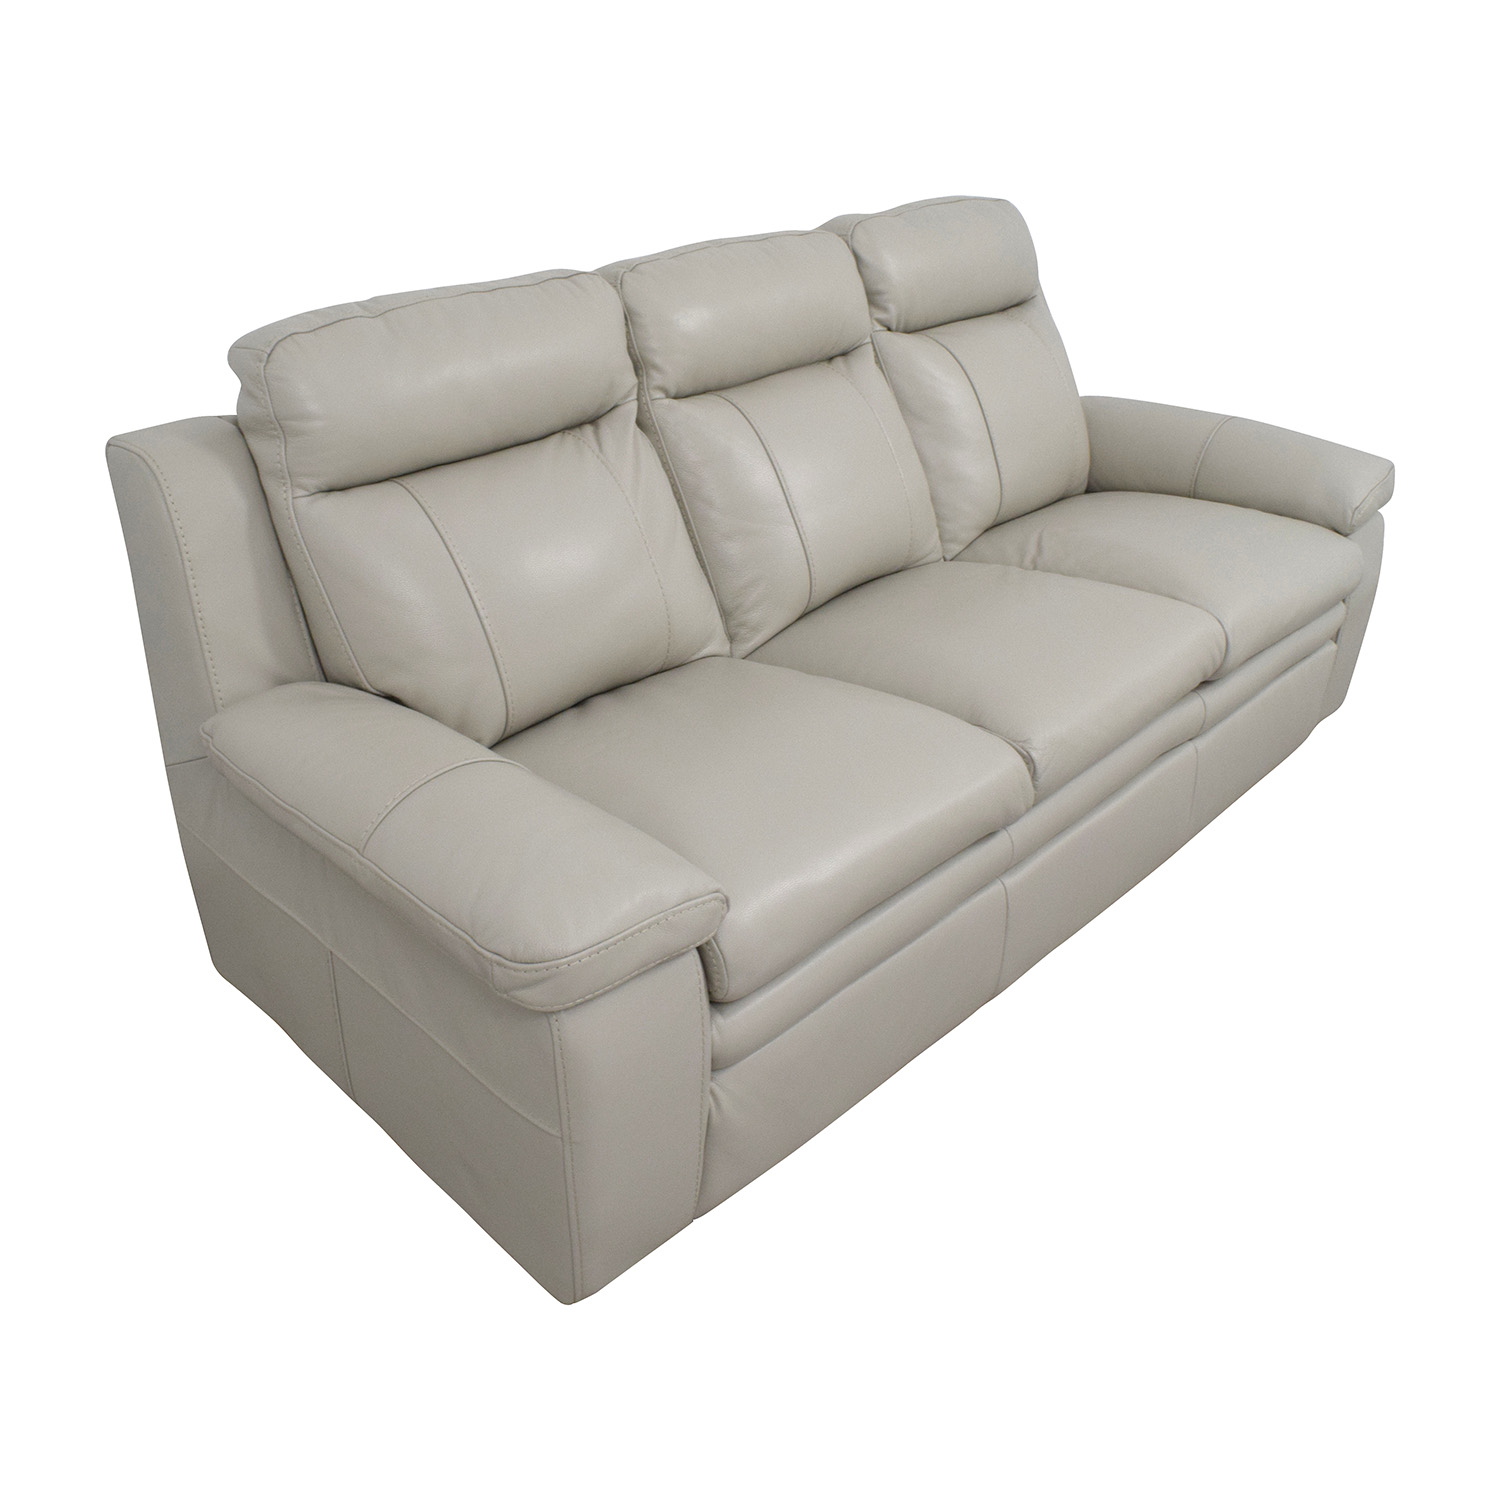 White leather sofas for sale innovative corner leather for White couches for sale